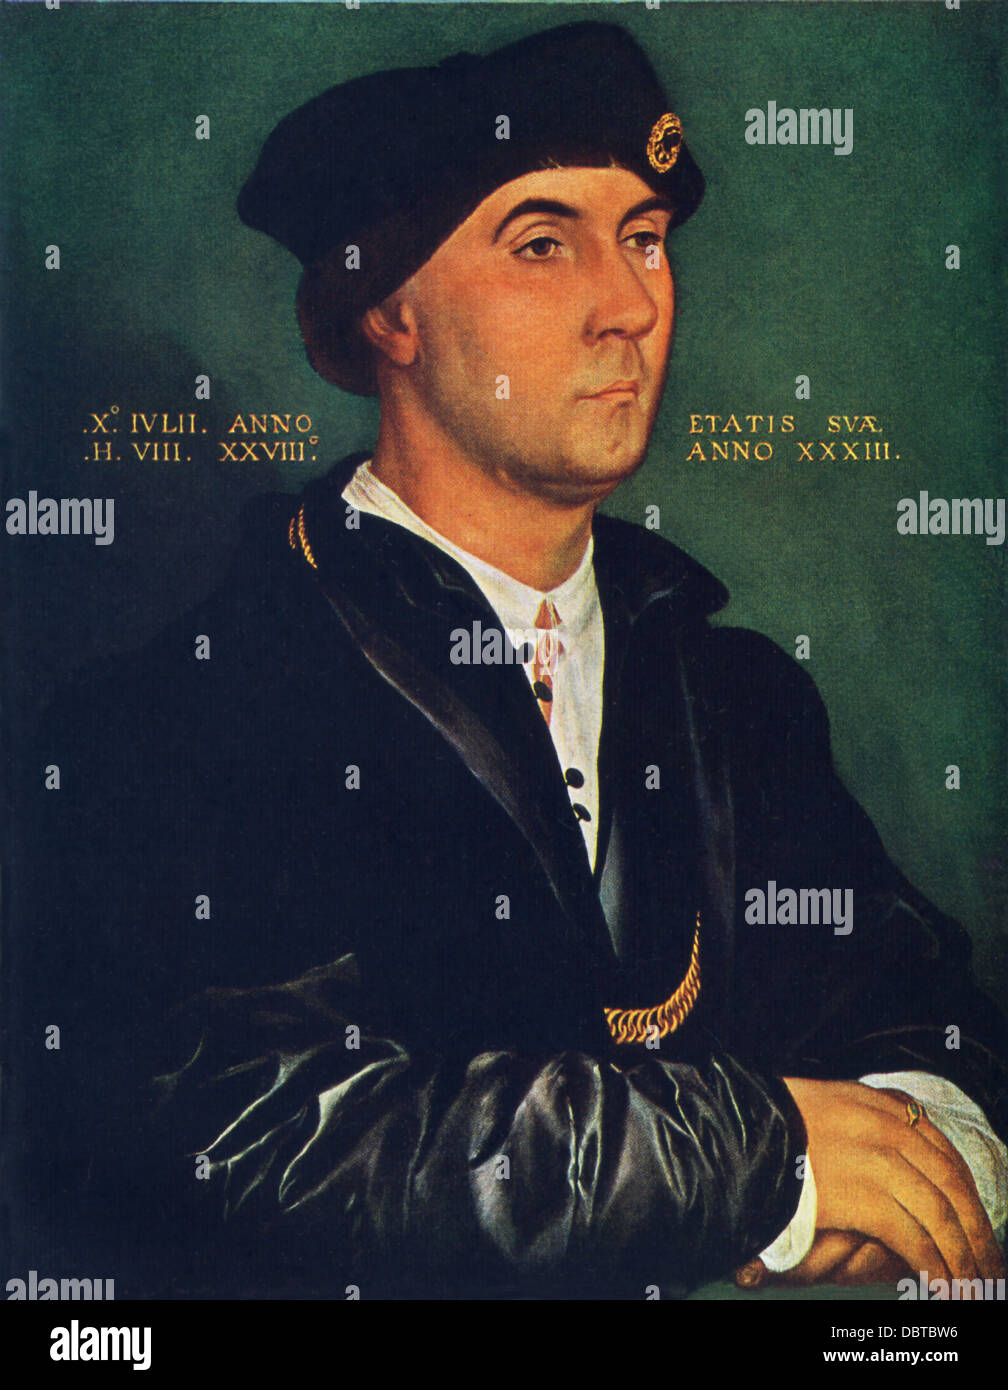 Hans Holbein the Younger (1497-1543), outstanding artist of German Renaissance, painted Sir Richard Southwell. - Stock Image